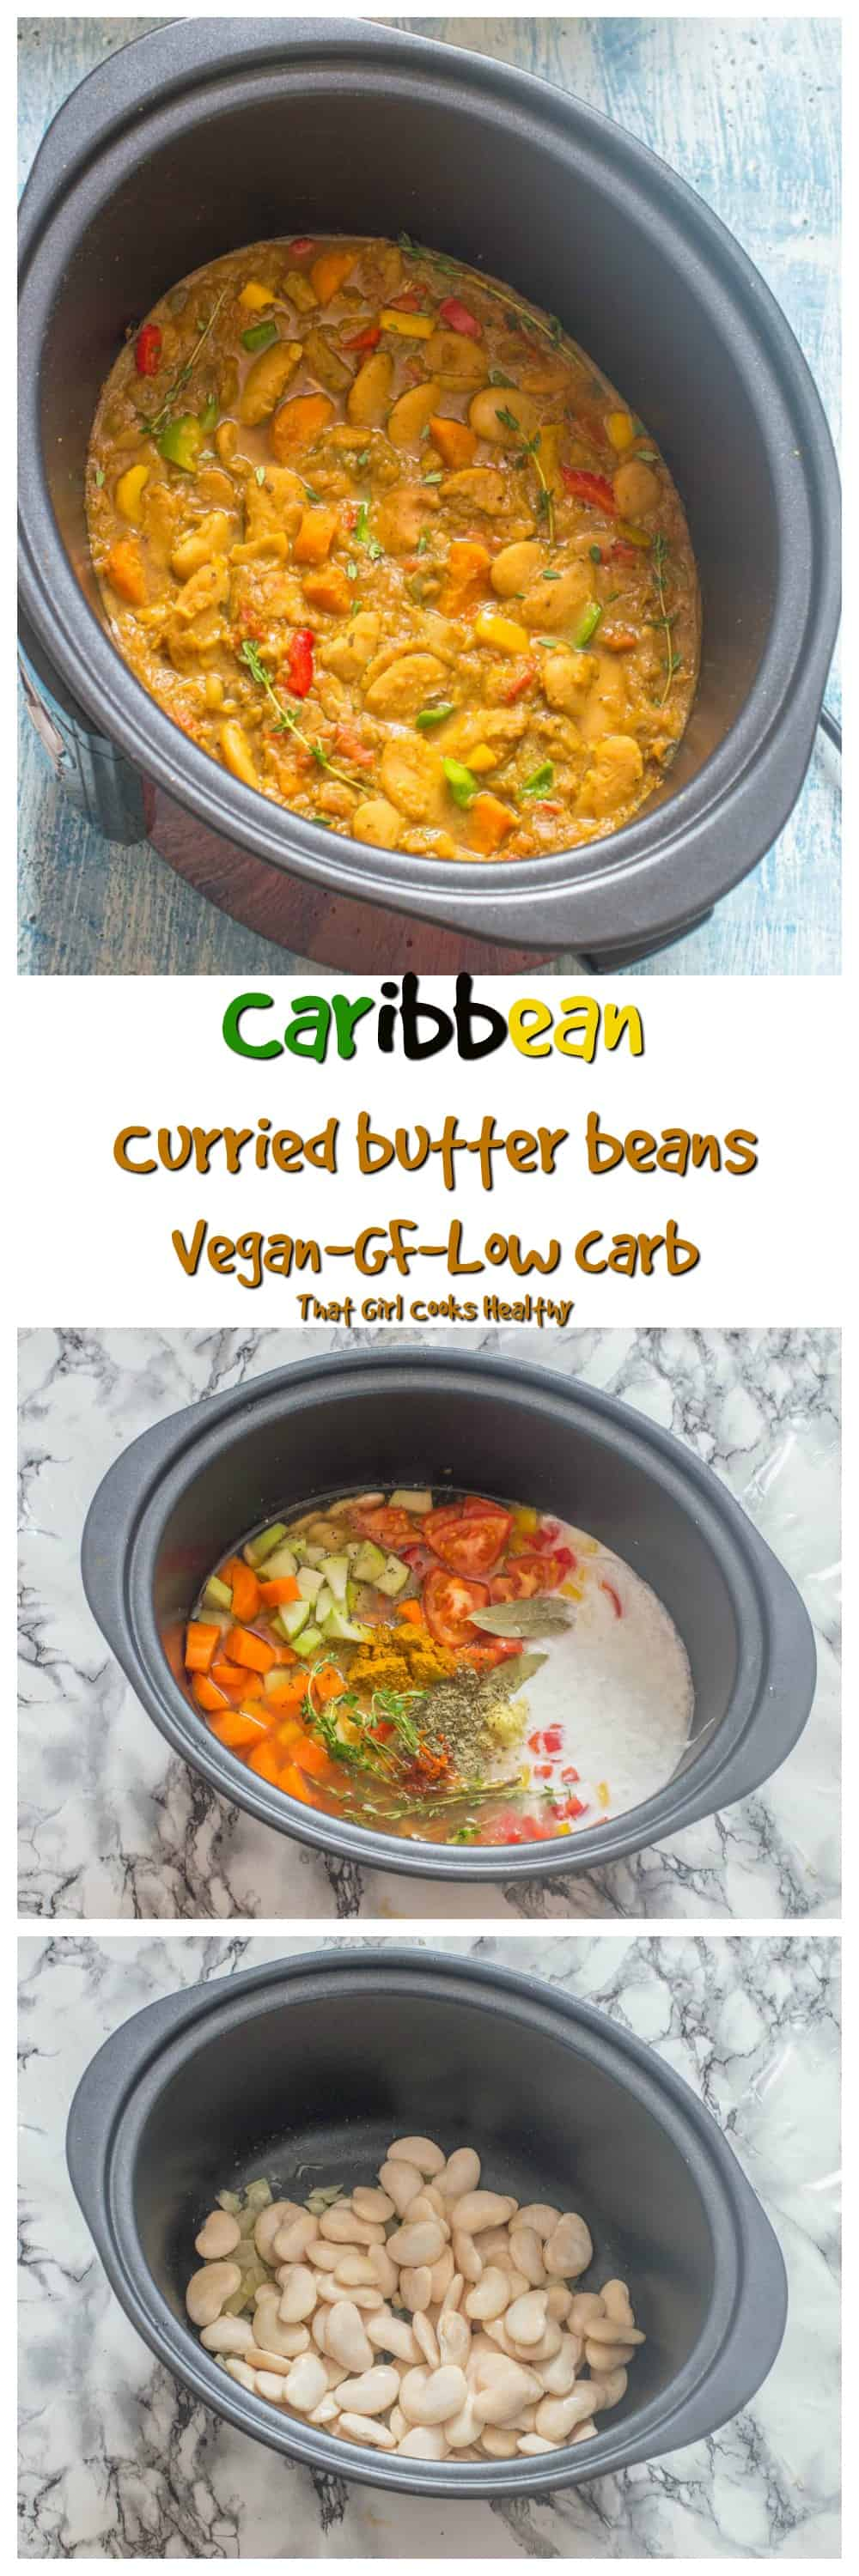 Delicious slow cooked Caribbean curried butter beans with vegetables is a great low low, weight loss option